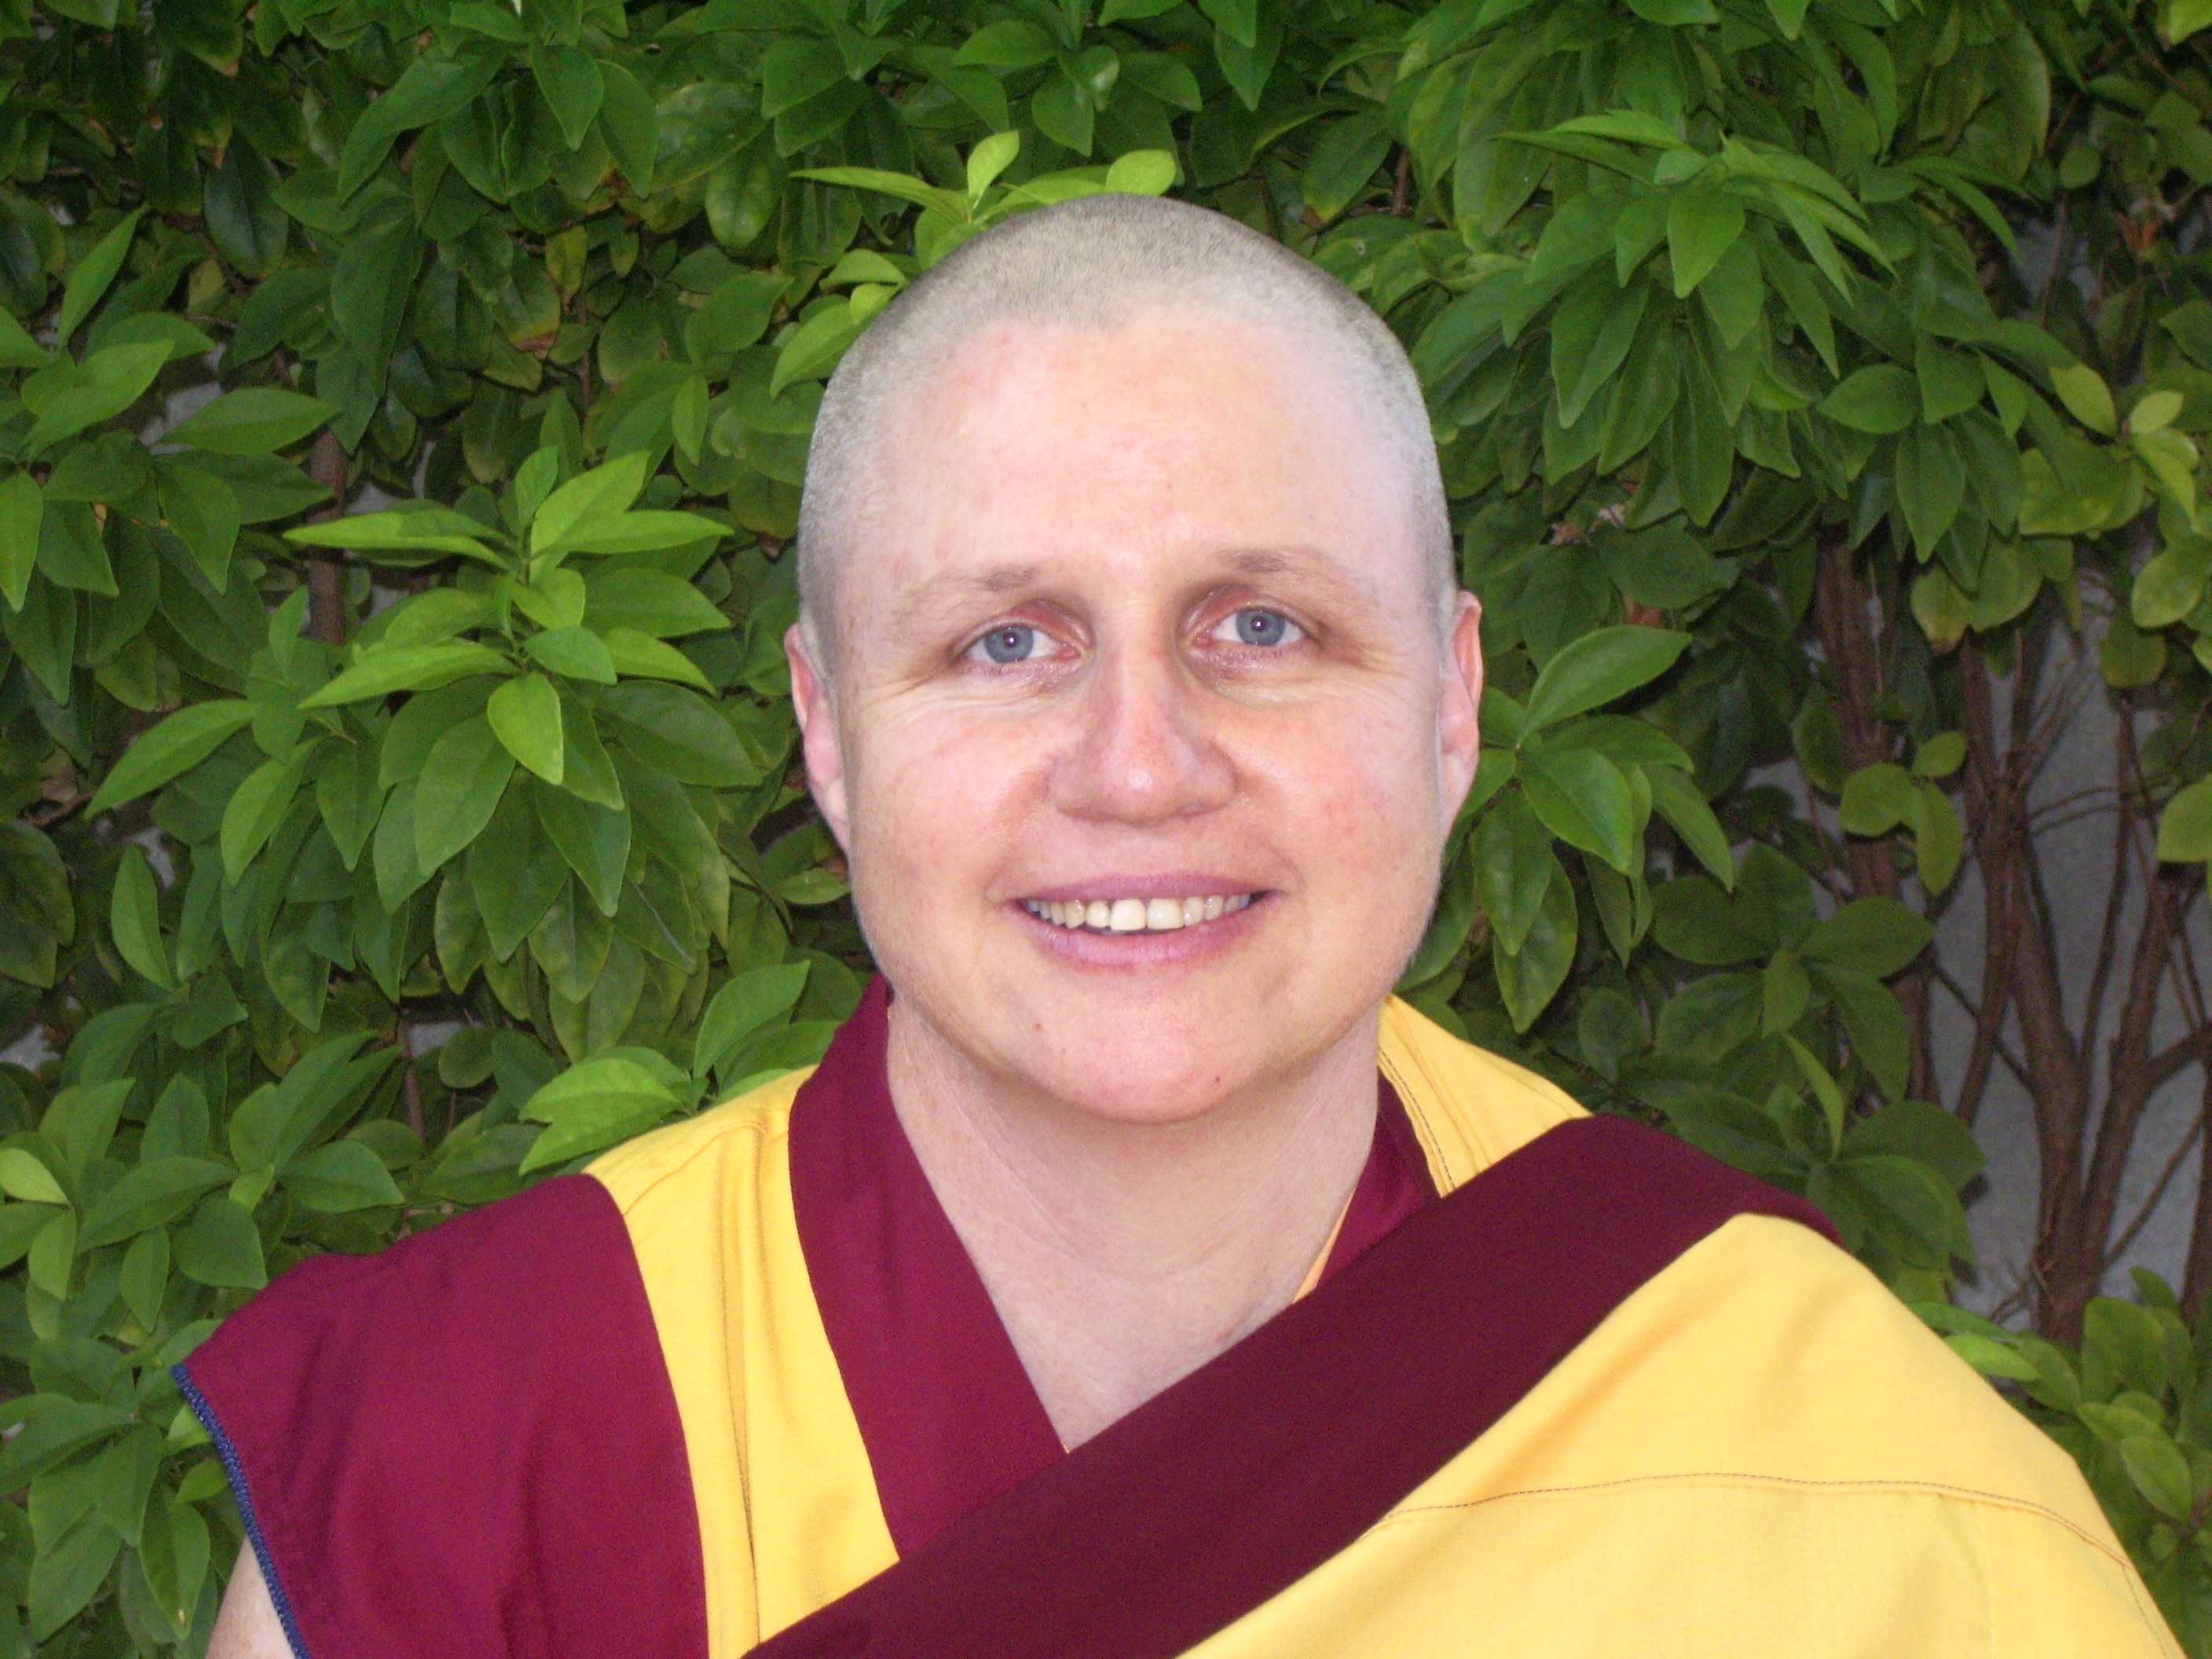 Buddhist nun and meditation teacher Kelsang Norjin